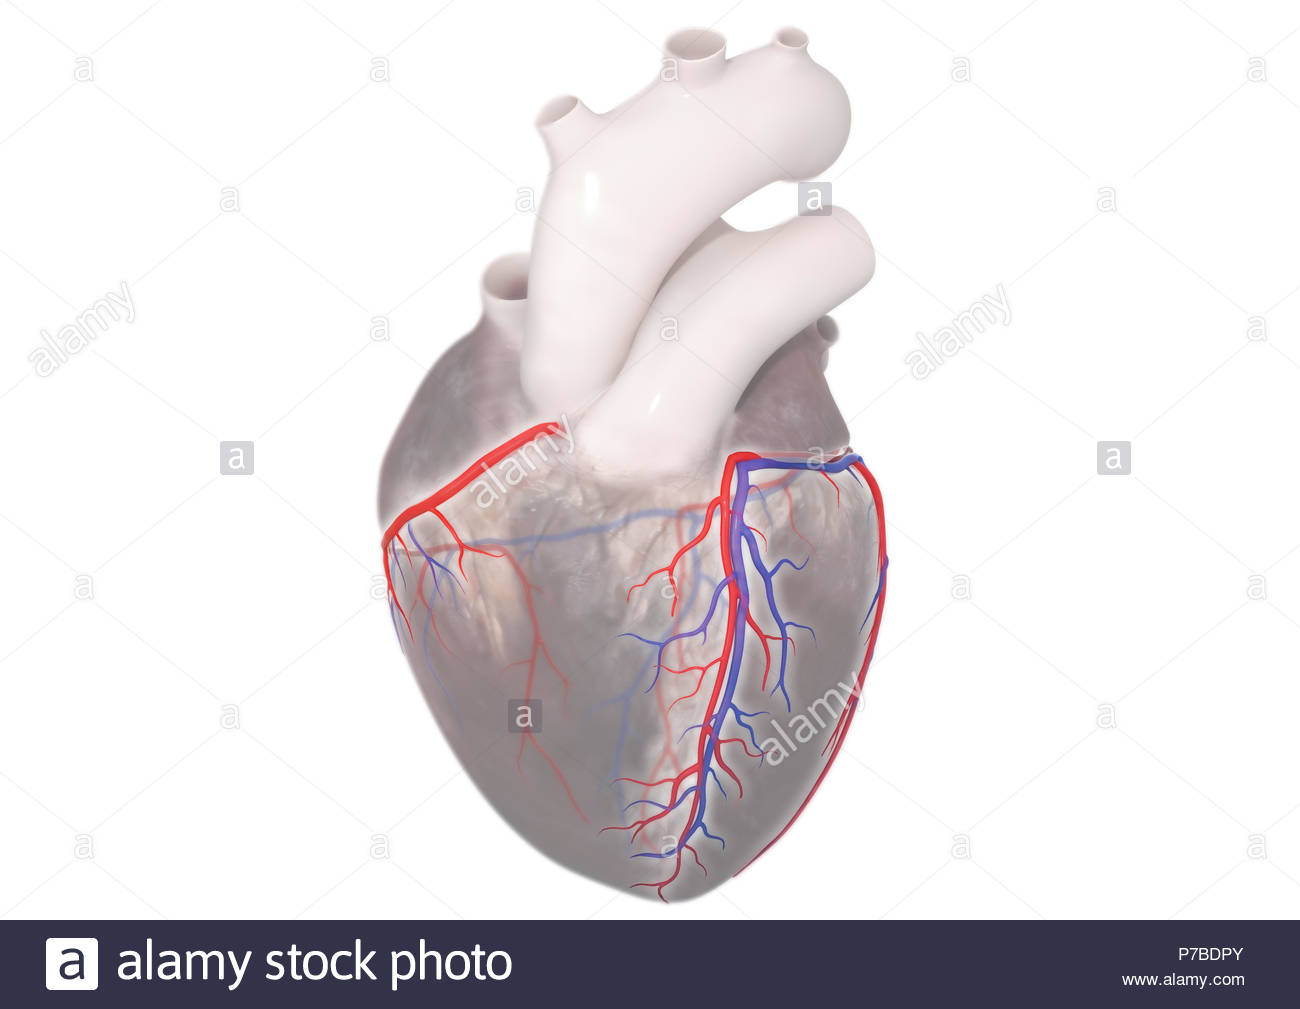 Cross Sectional Image Of Heart Stock Photos & Cross Sectional Image ...